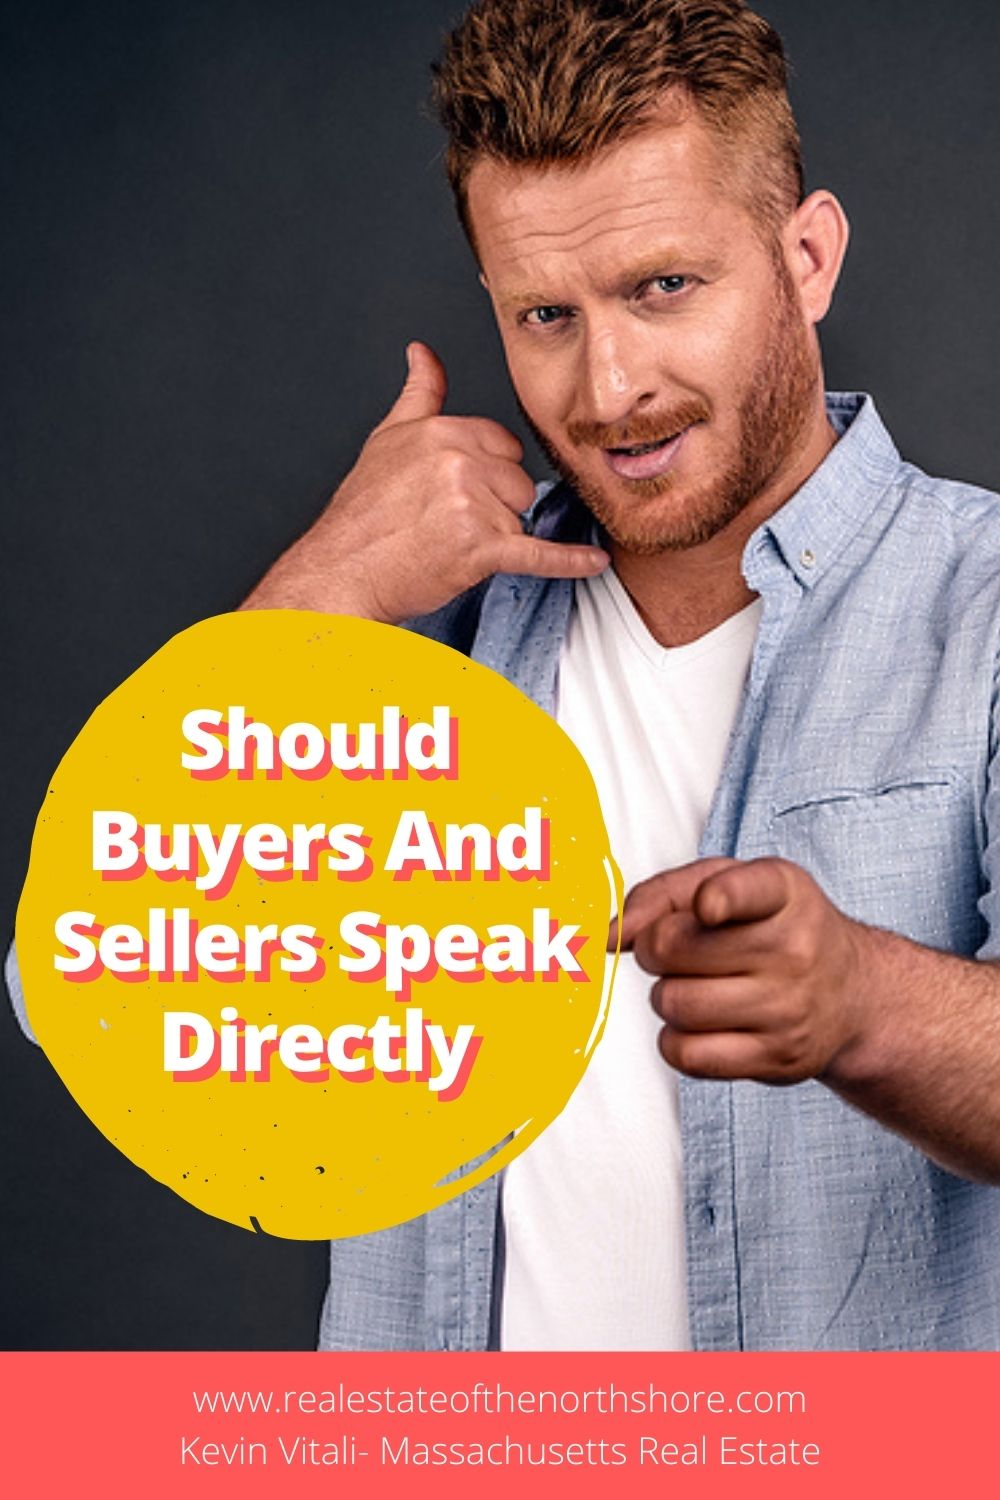 Should A Home Buyer and Home Seller Speak Directly?